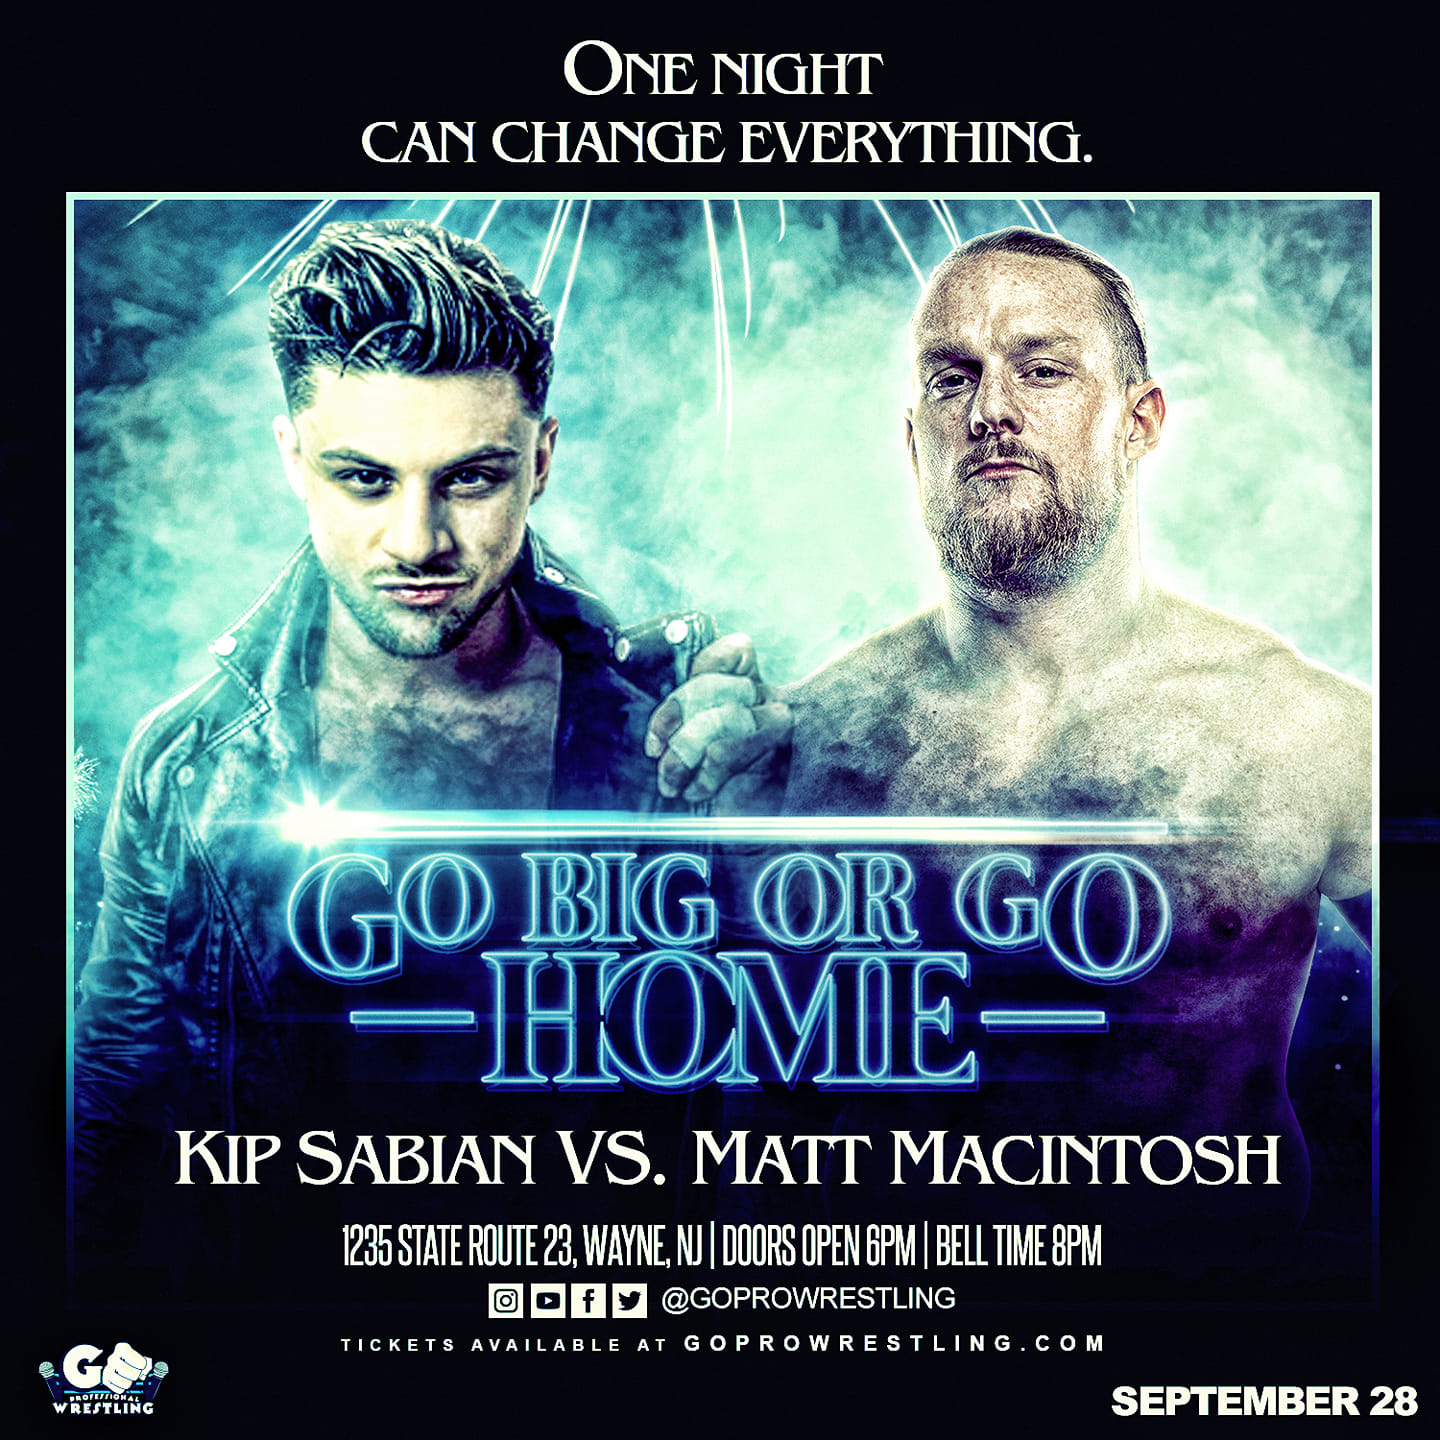 Kip Sabian vs Matt Macintosh